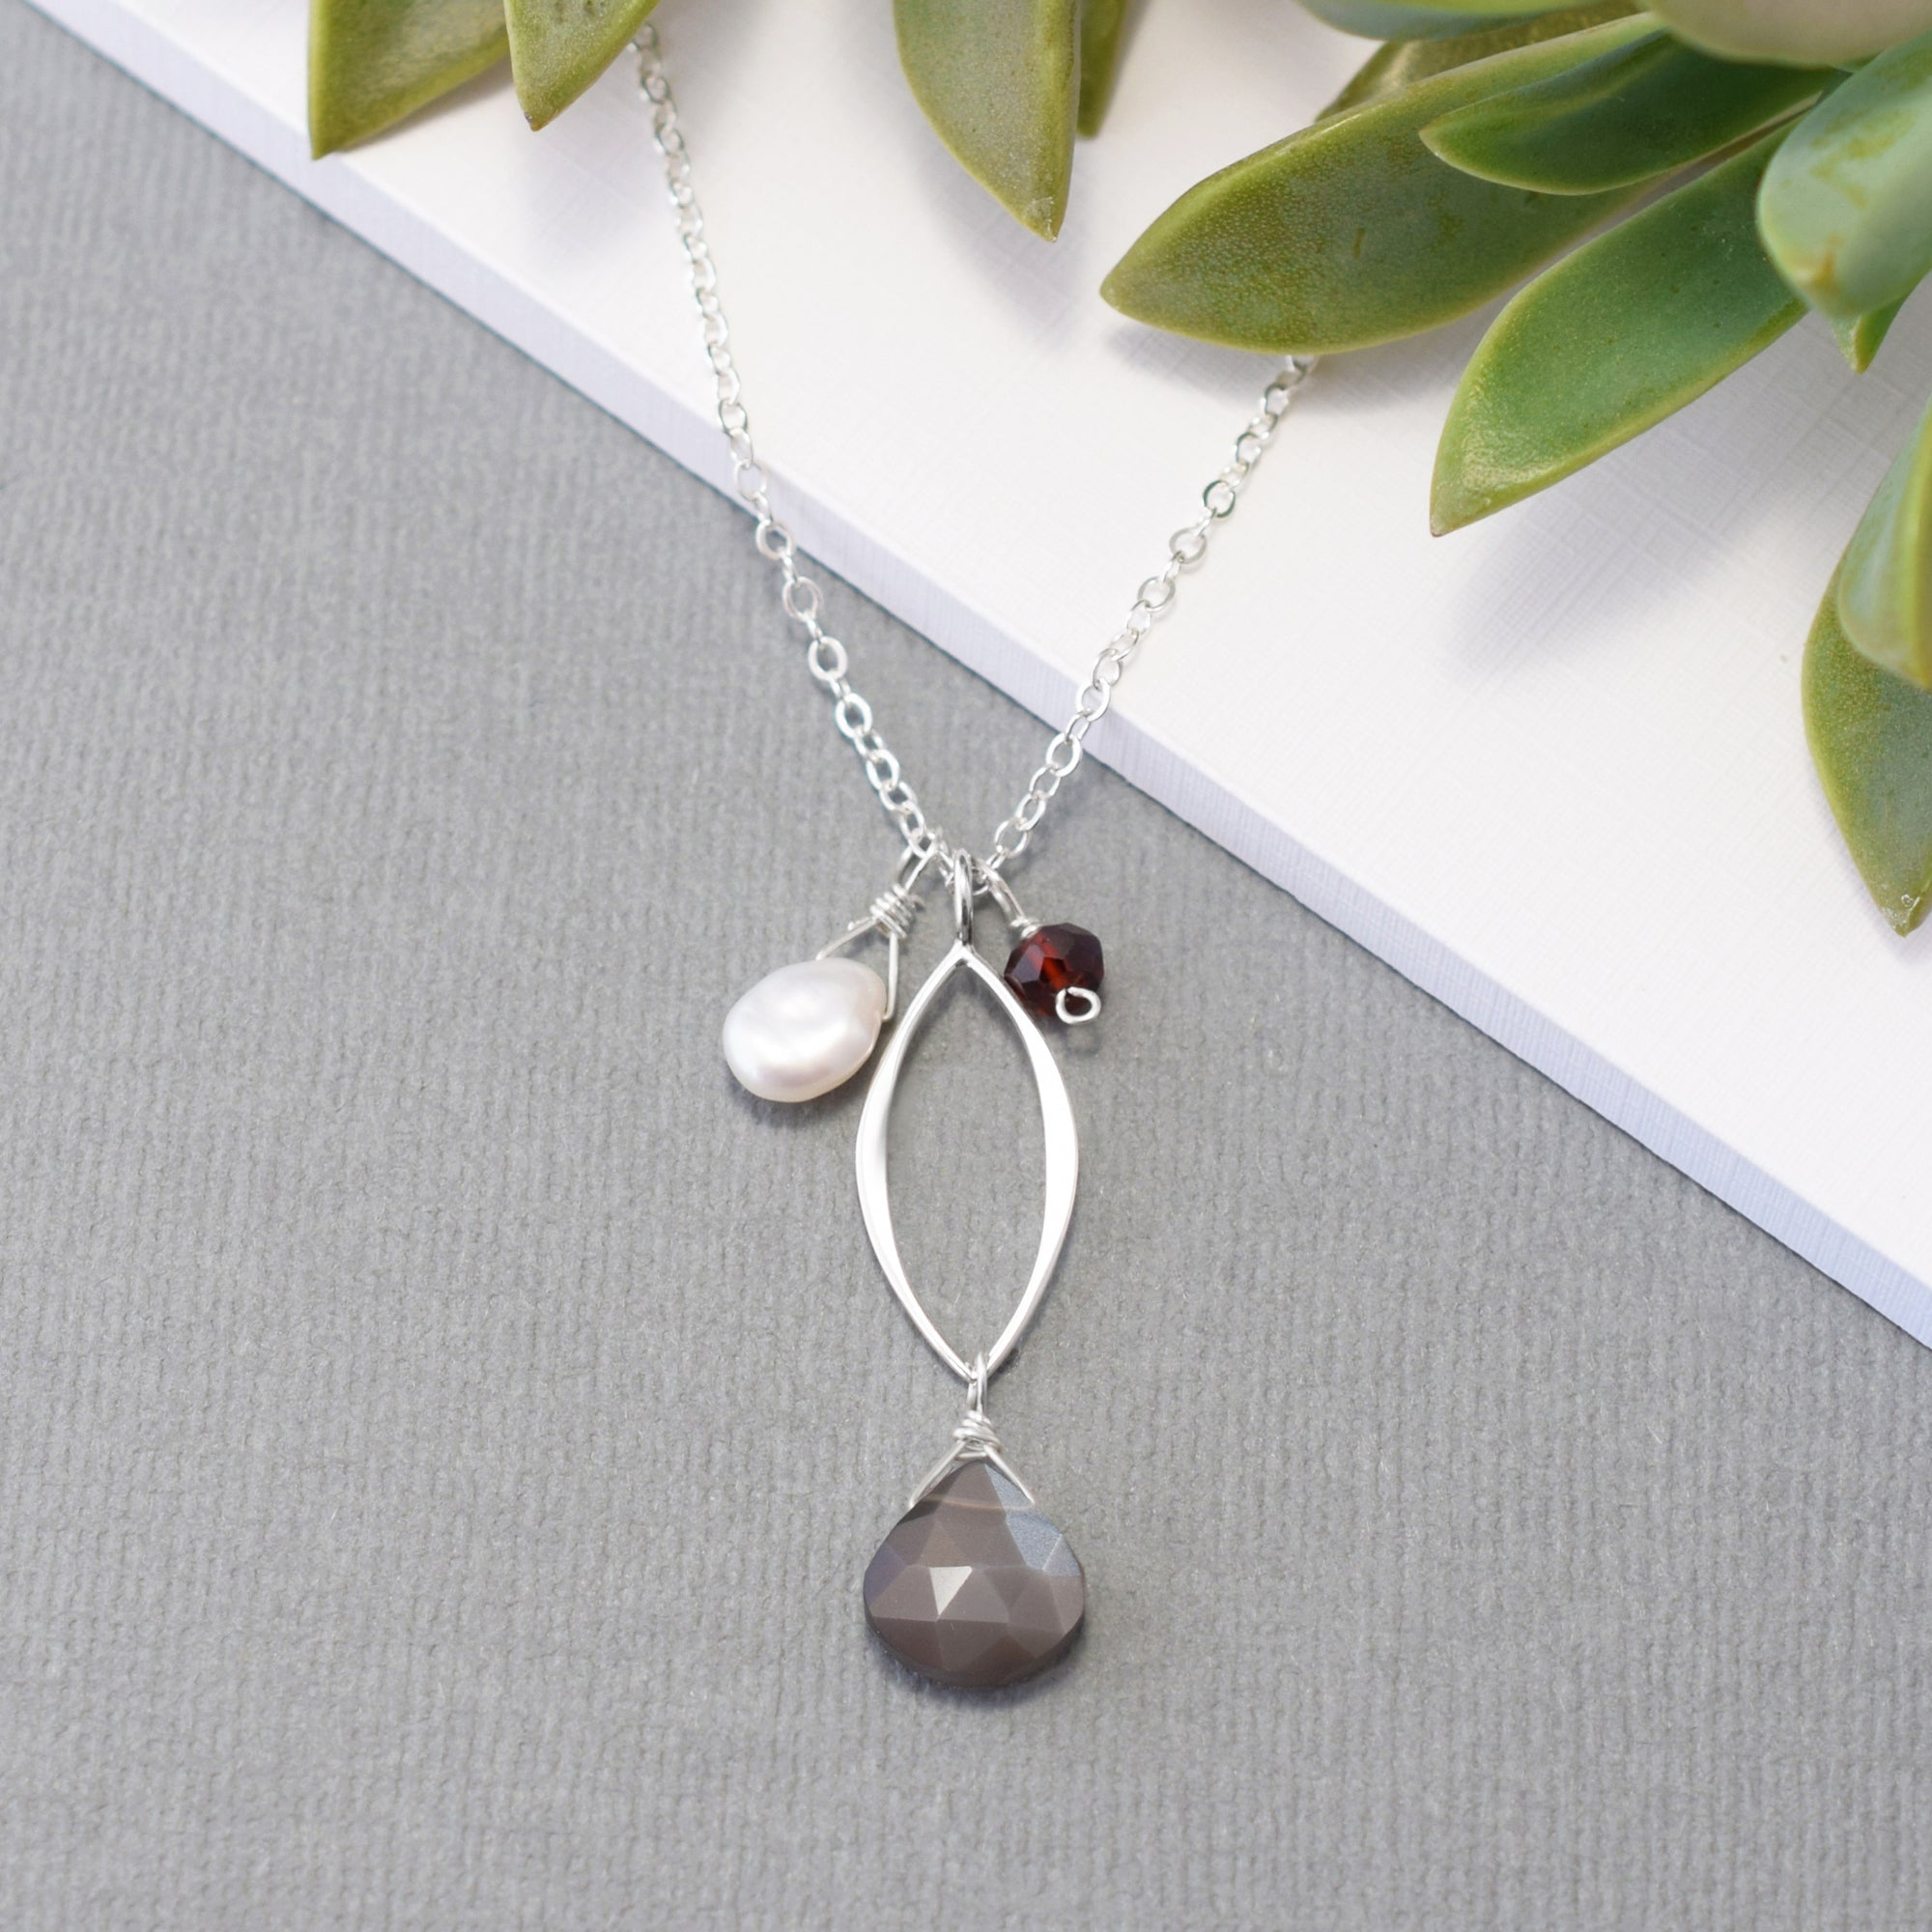 Small Silver Leaf Necklace with Gray Moonstone and Gemstones